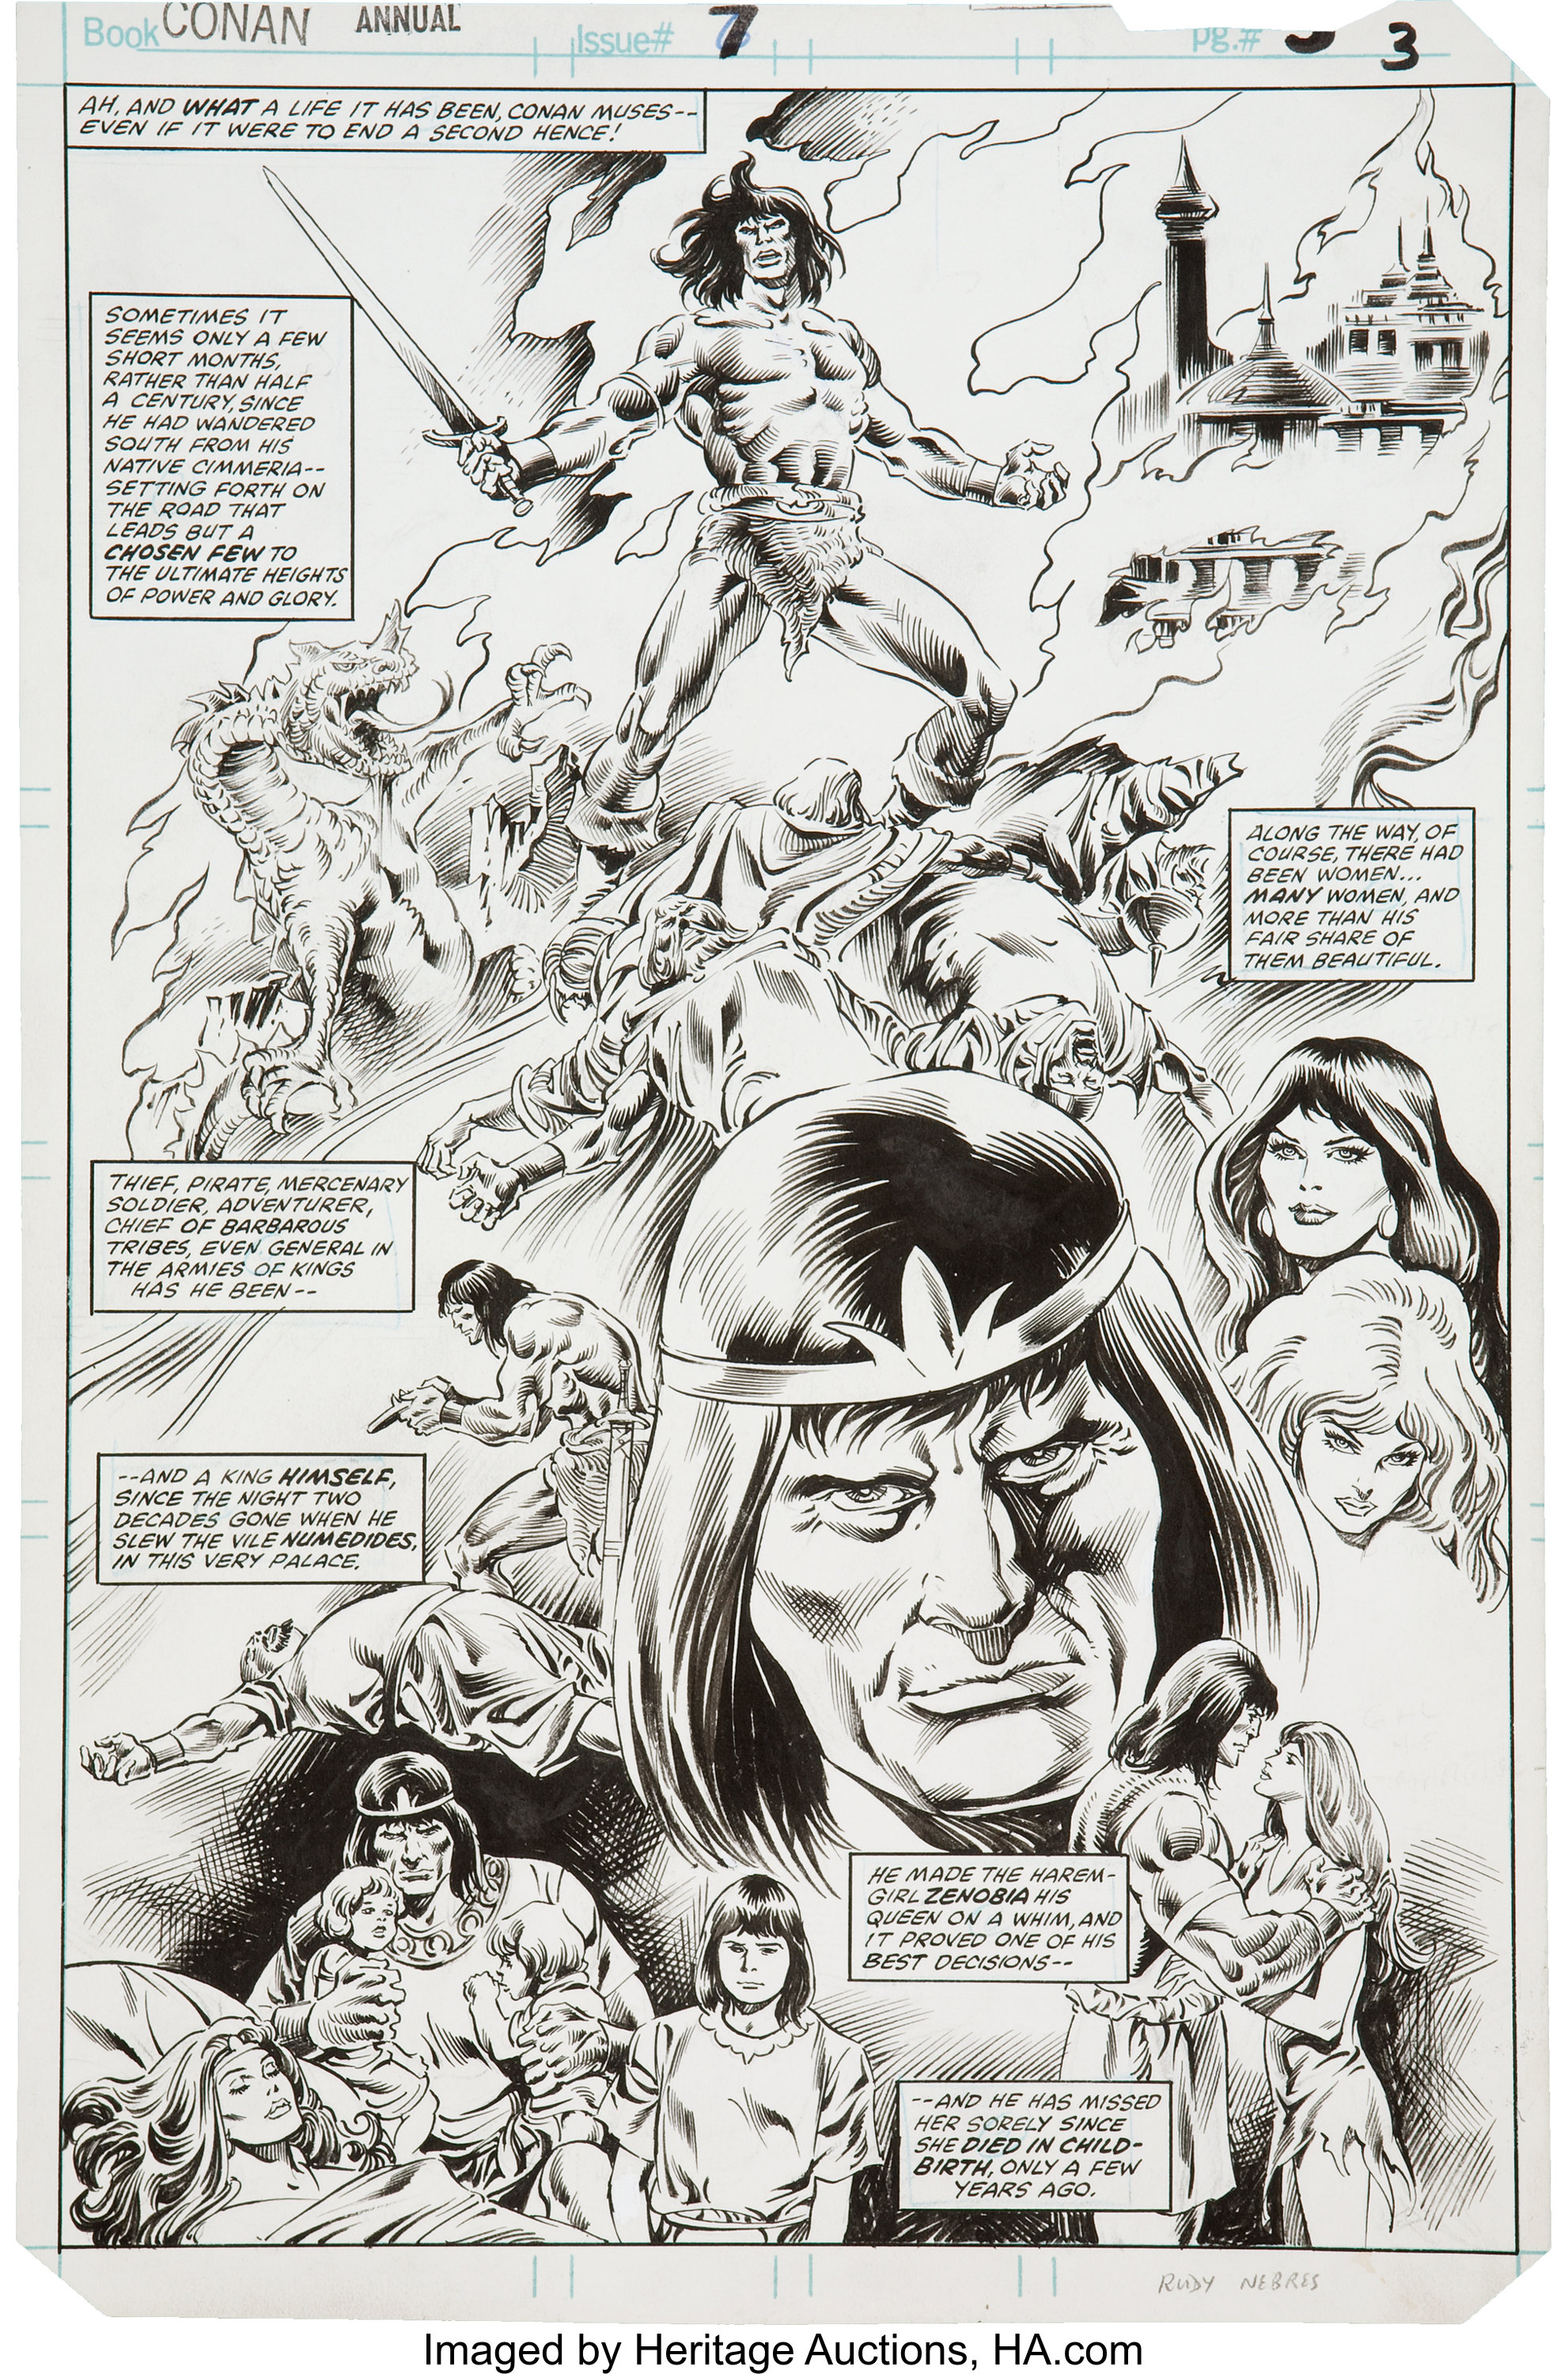 7 Muses Comics john buscema and danny bulanadi conan annual #7 splash page